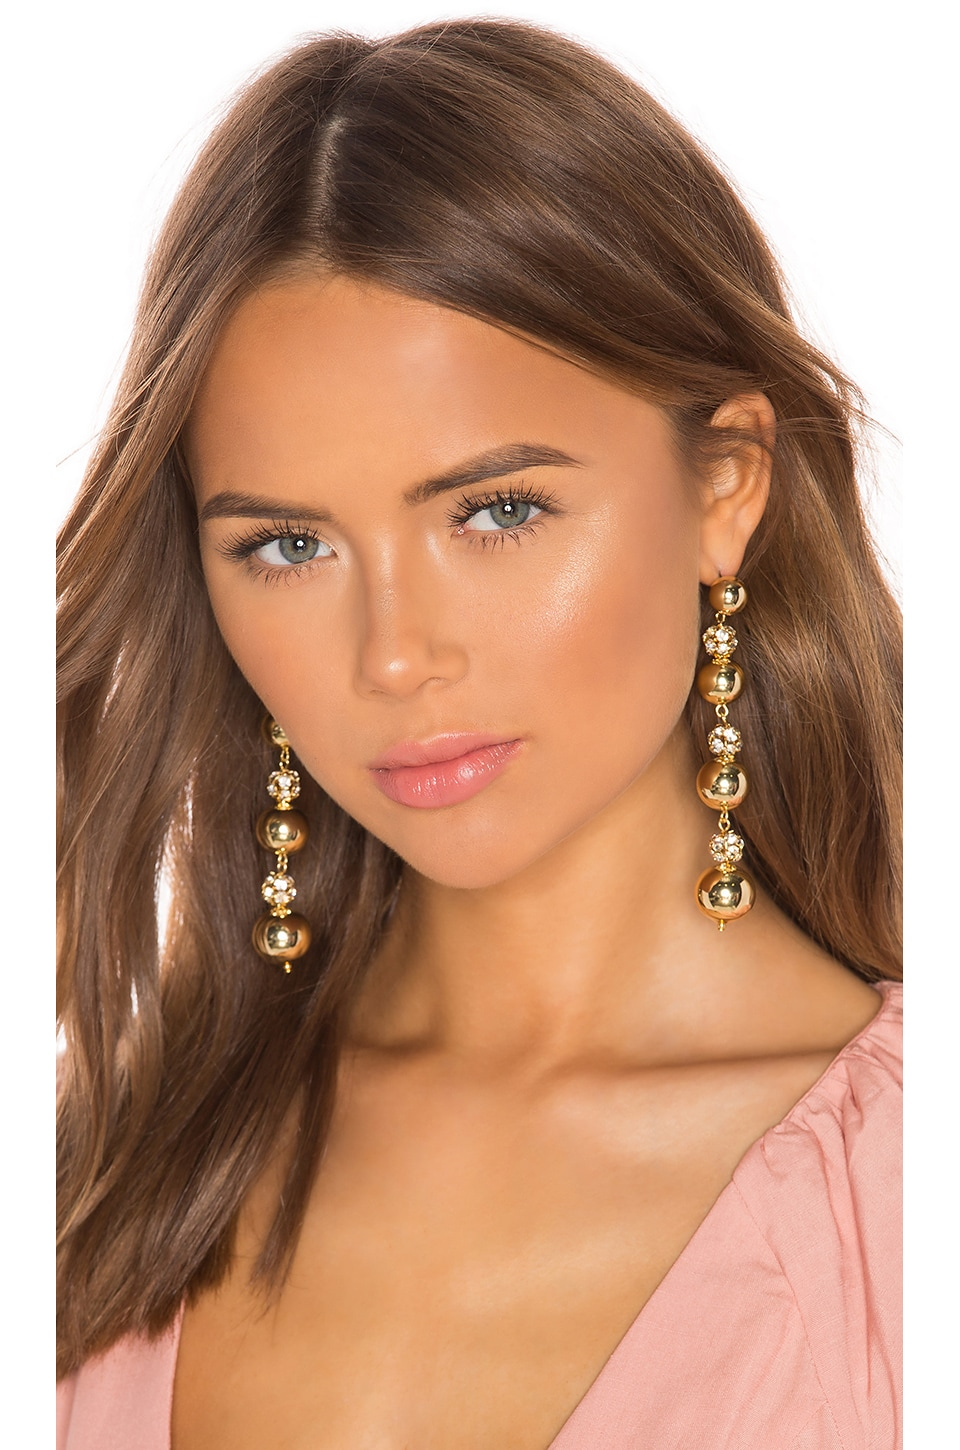 LPA Sienna Earring in Gold